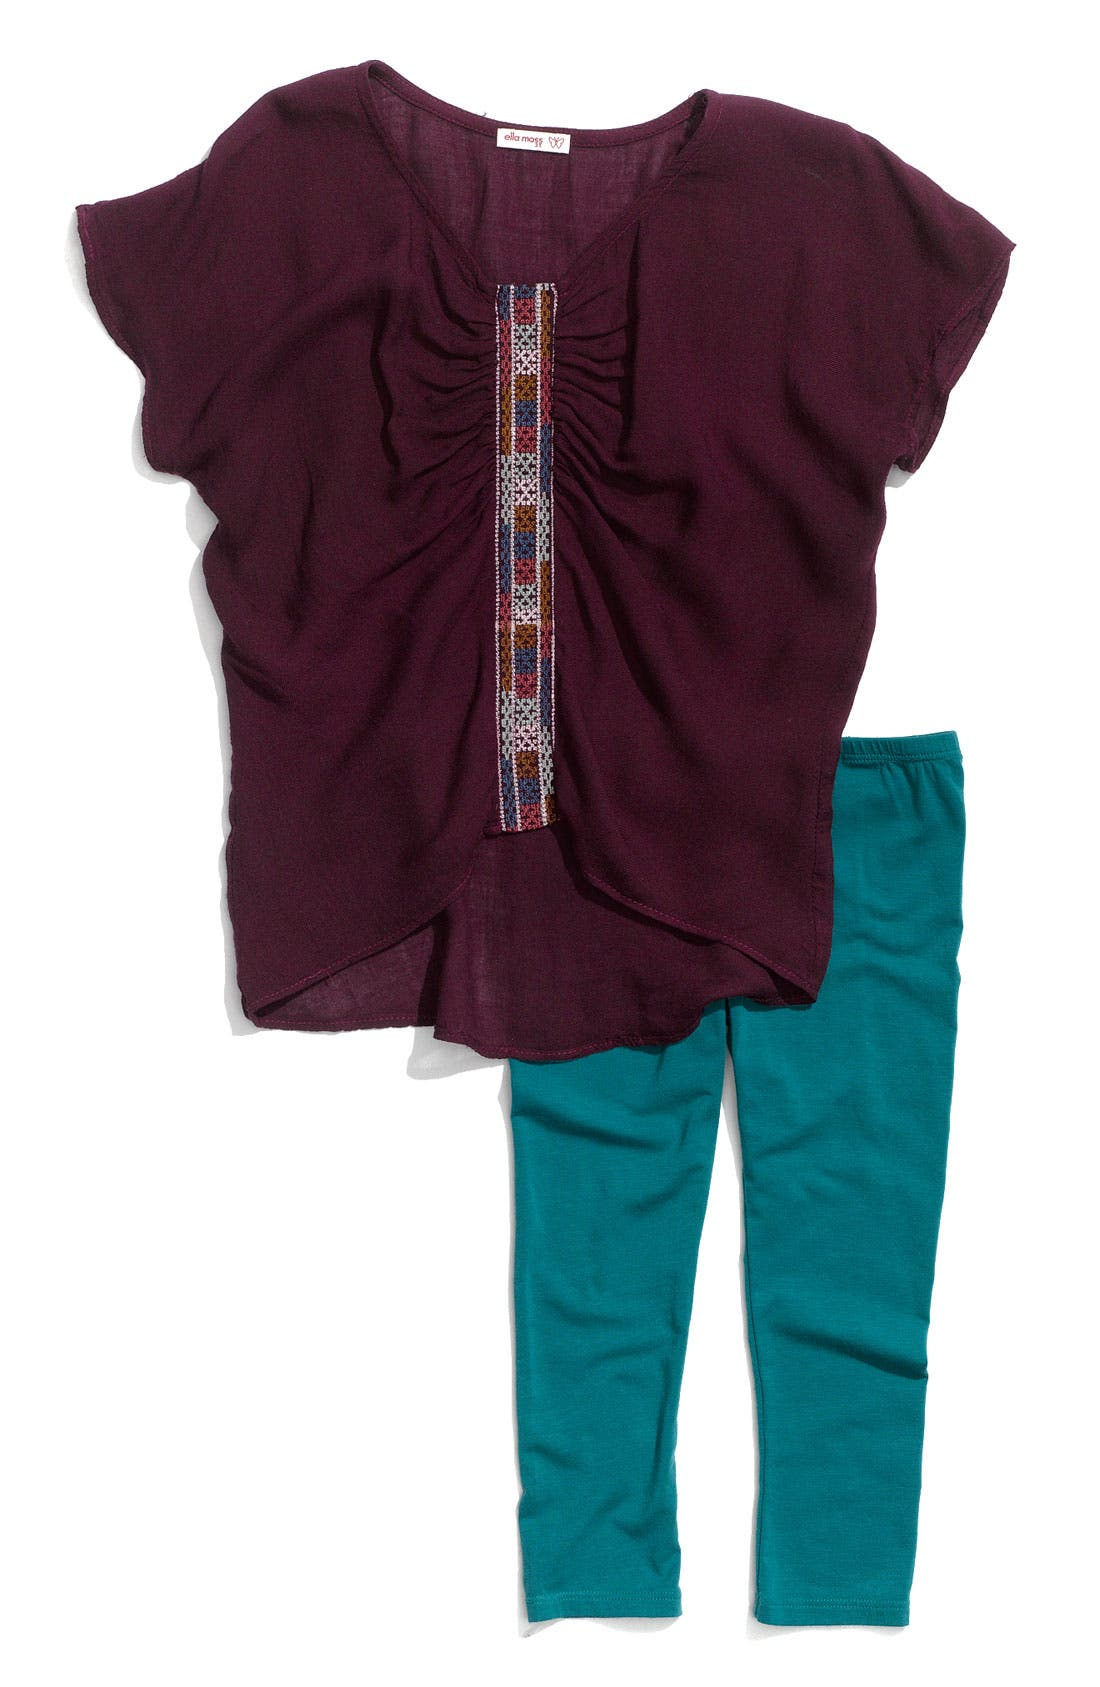 Main Image - Little Ella 'Surrey' Tunic & Leggings Set (Toddler)